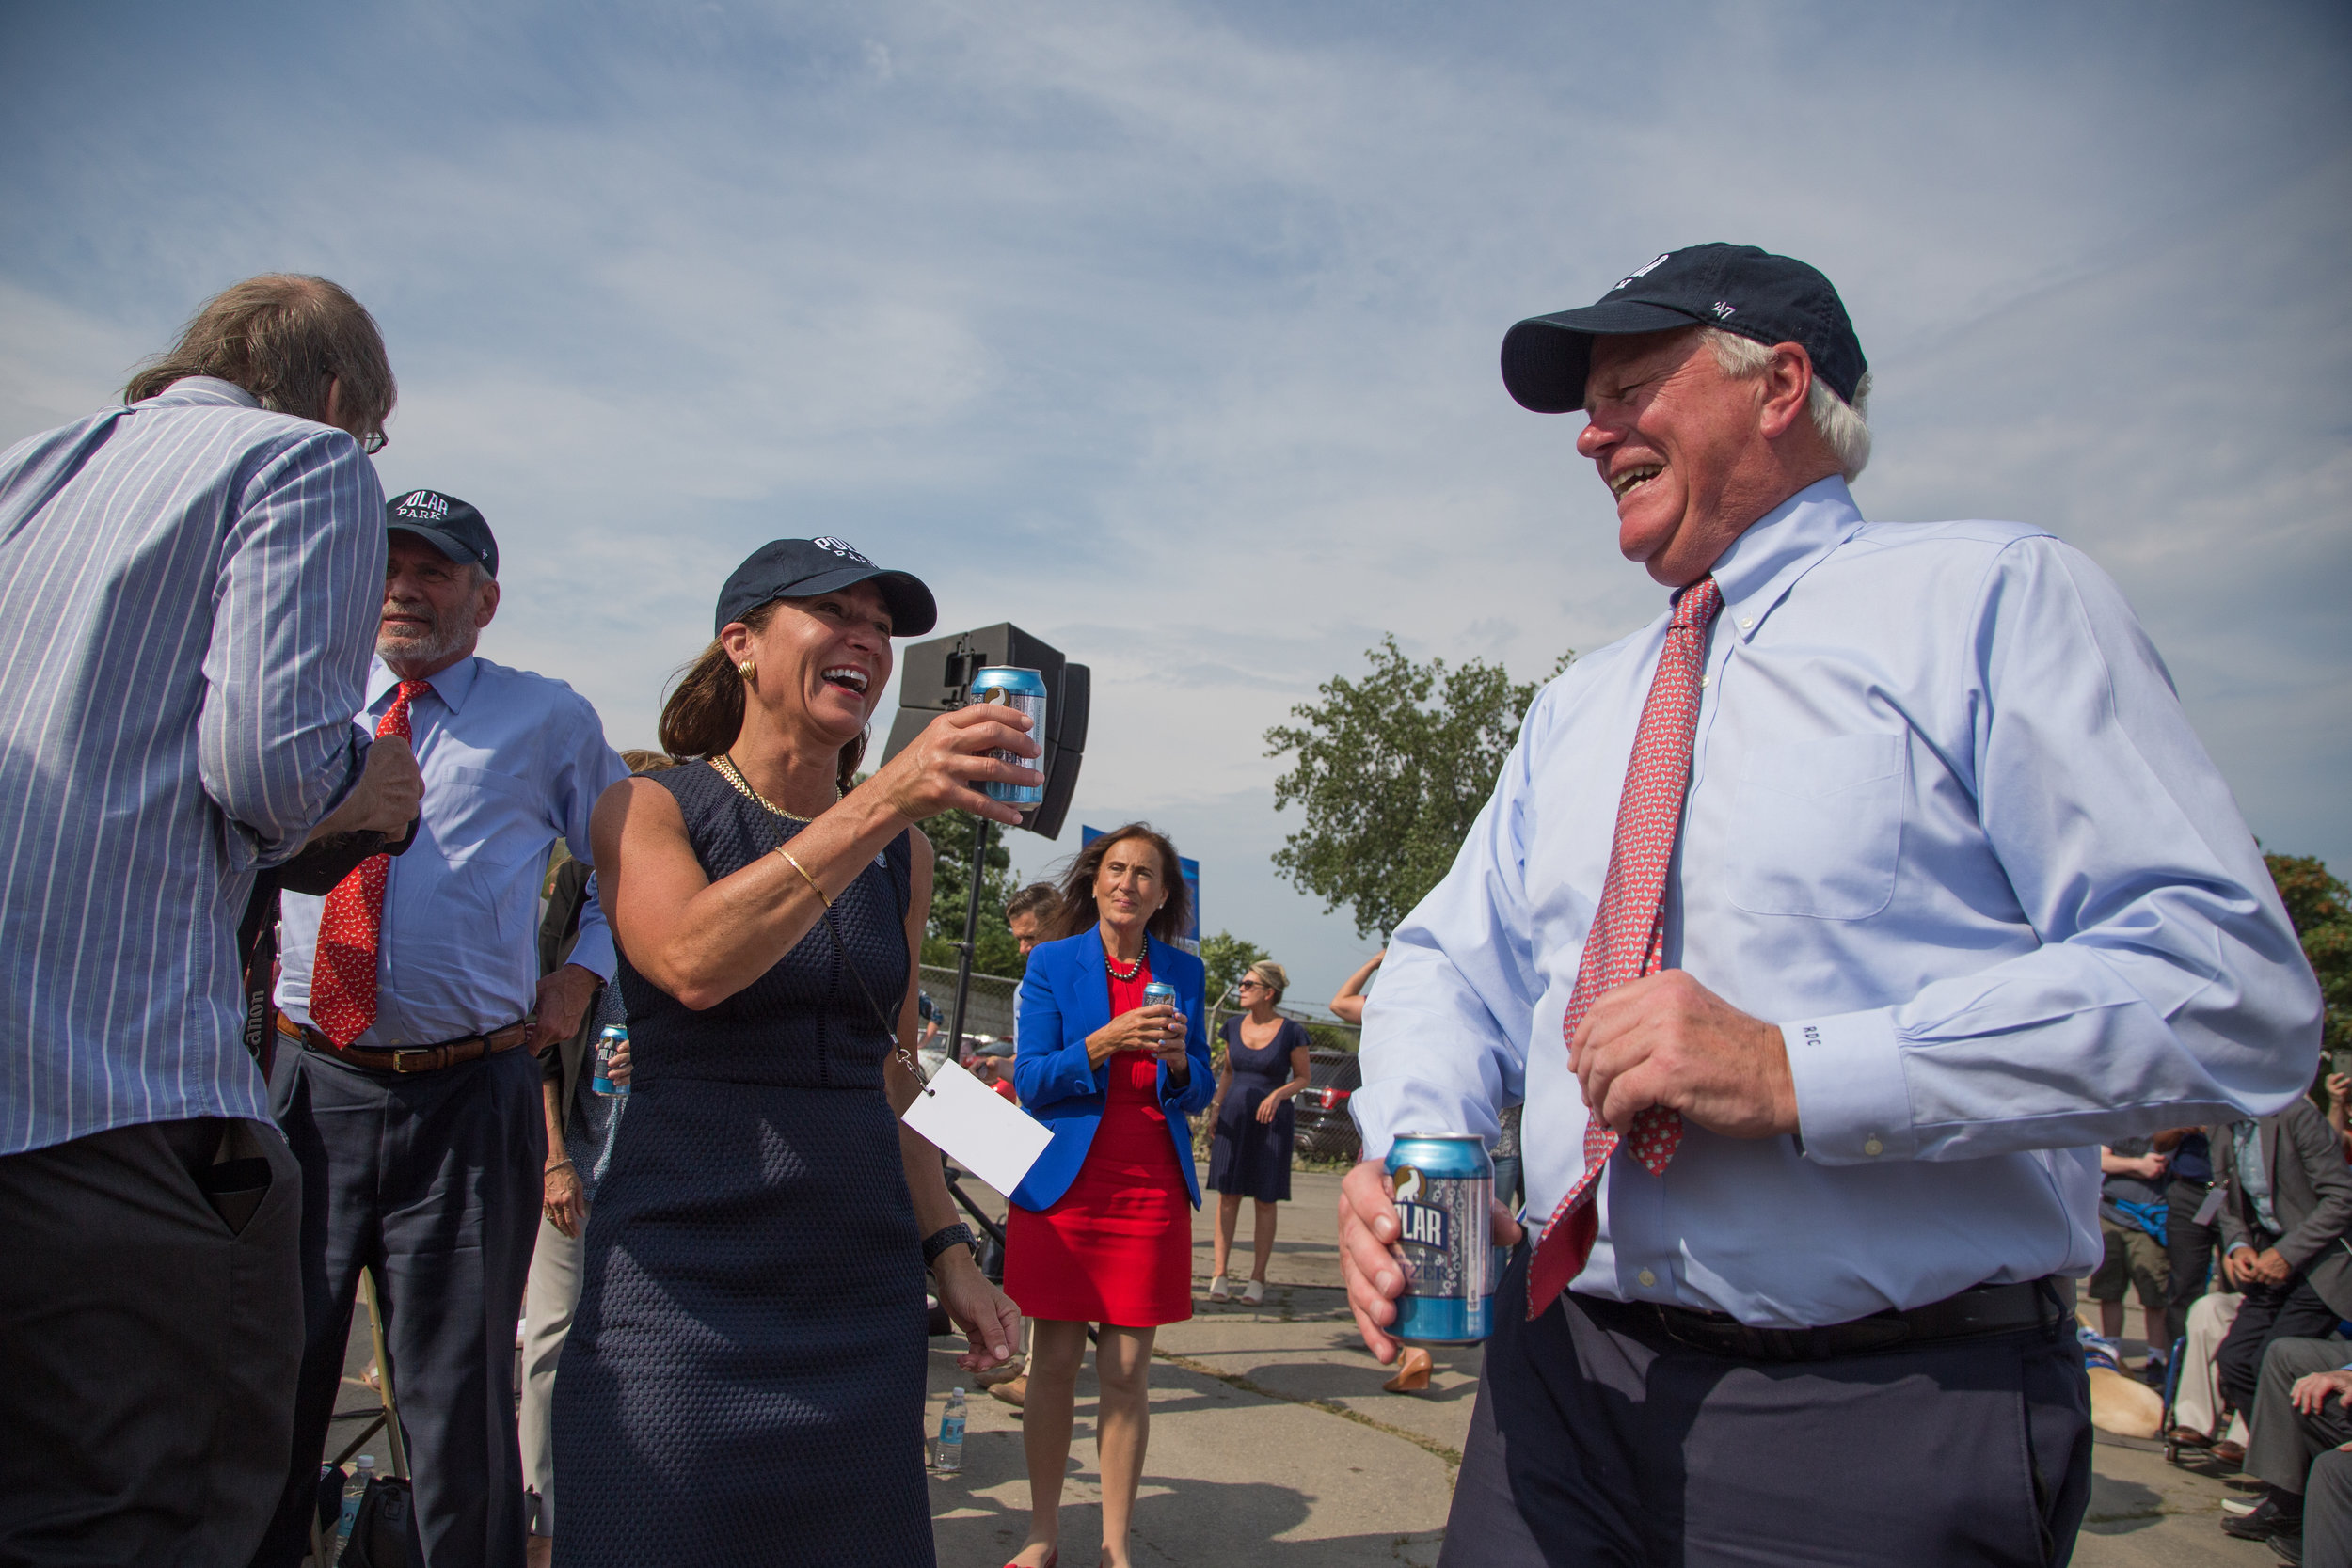 Lt. Governor Karyn Polito  toasts with local officials at the groundbreaking event for Polar Park, future home of the Worcester Red Sox. July 11, 2019, in Worcester, Massachusetts.